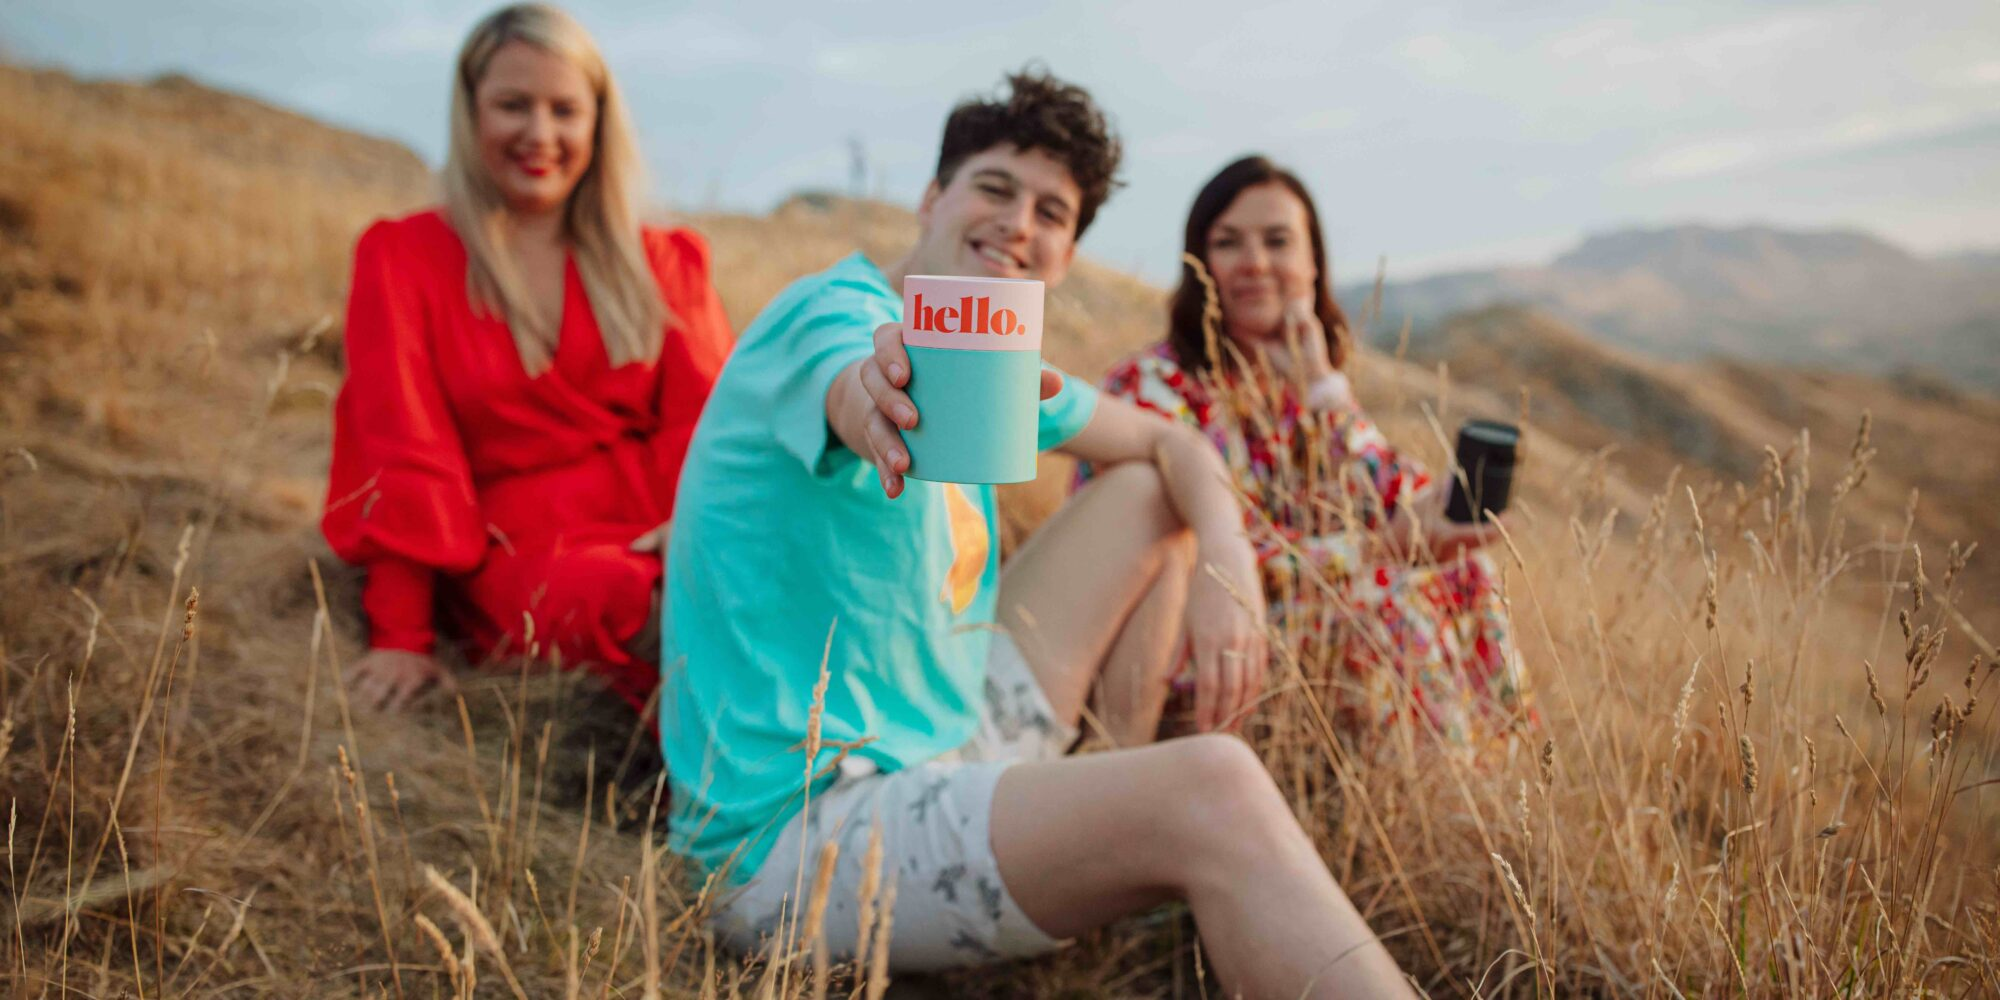 The Hello Cup's #PeopleWithPeriods Campaign Broadens The Period Care Conversation